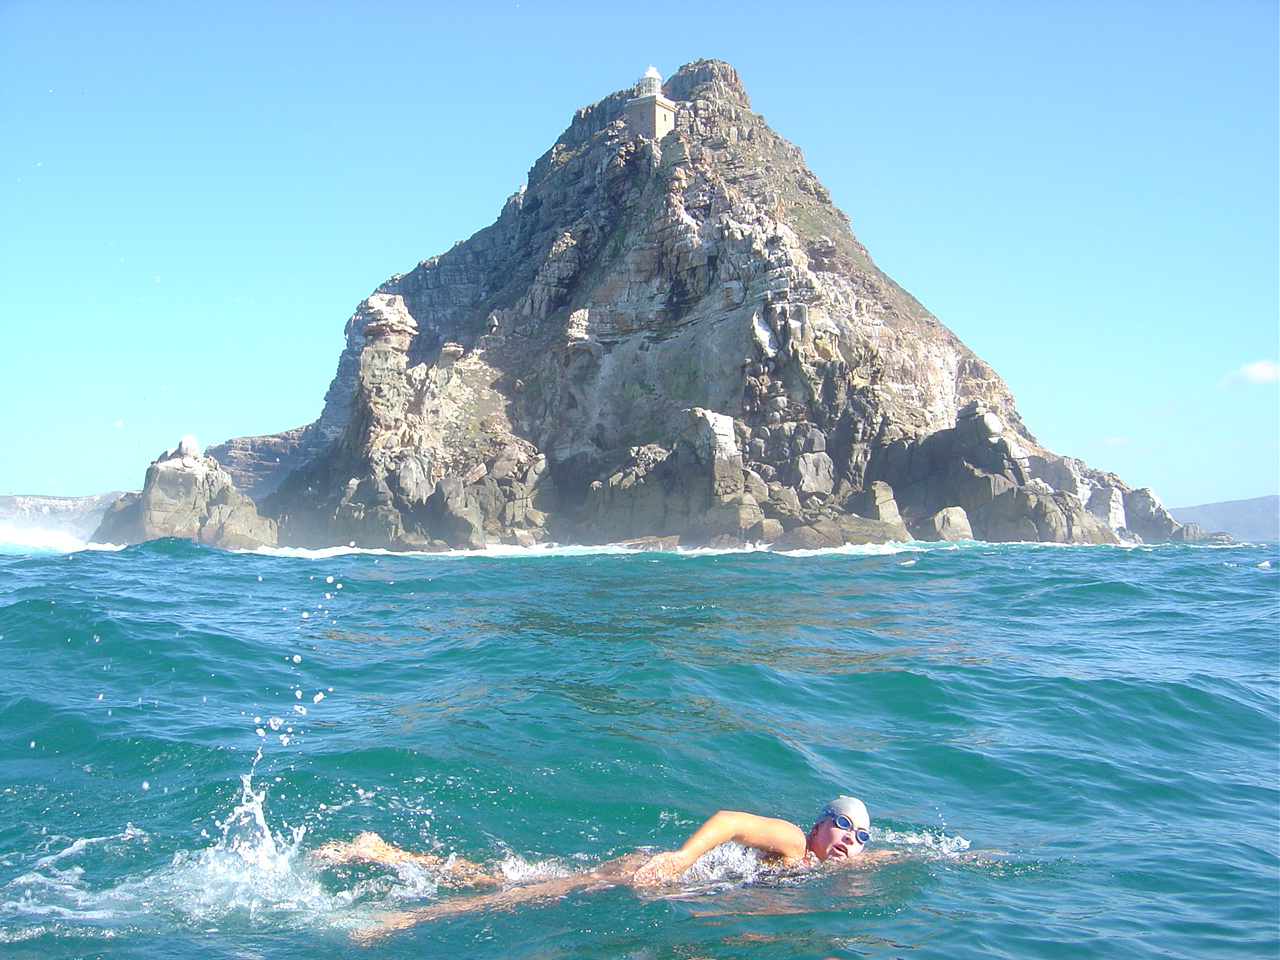 Carina rounds Cape Point in 2004, becoming the first South African to do so